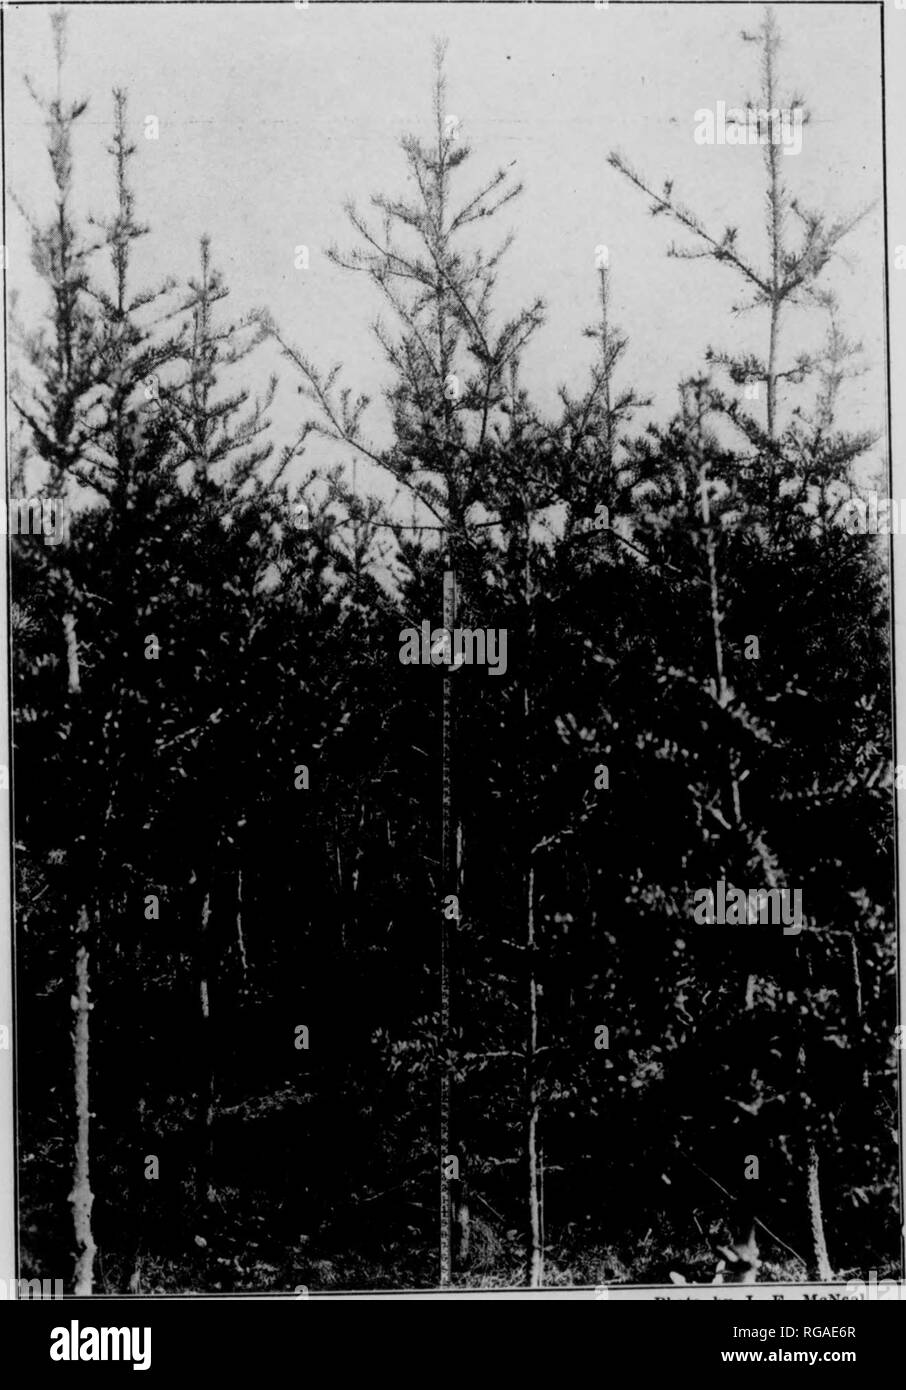 . Bulletin (Pennsylvania Department of Forestry), no. 14-16. Forests and forestry. s. ' â #V;vr ⢠^ ⢠m; IMioto by J. B. McNeal. Fig. 26. PLANTATION OF SCOTCH PINi: Trees nine years old from seed. Average height nine feet. Average diameter 1.2 inches. Jacob Nolde Estate, Berks County, Pennsylvania.. Photo by J. E. McNeal. Fig. 27. PLANTATION OF JACK PINE. Trees nine years old. Average height 10.4 feet. Average diameter 1.3 inches. Jacob Nolde Estate, Berks County, Pennsylvania.. Please note that these images are extracted from scanned page images that may have been digitally enhanced for rea - Stock Image